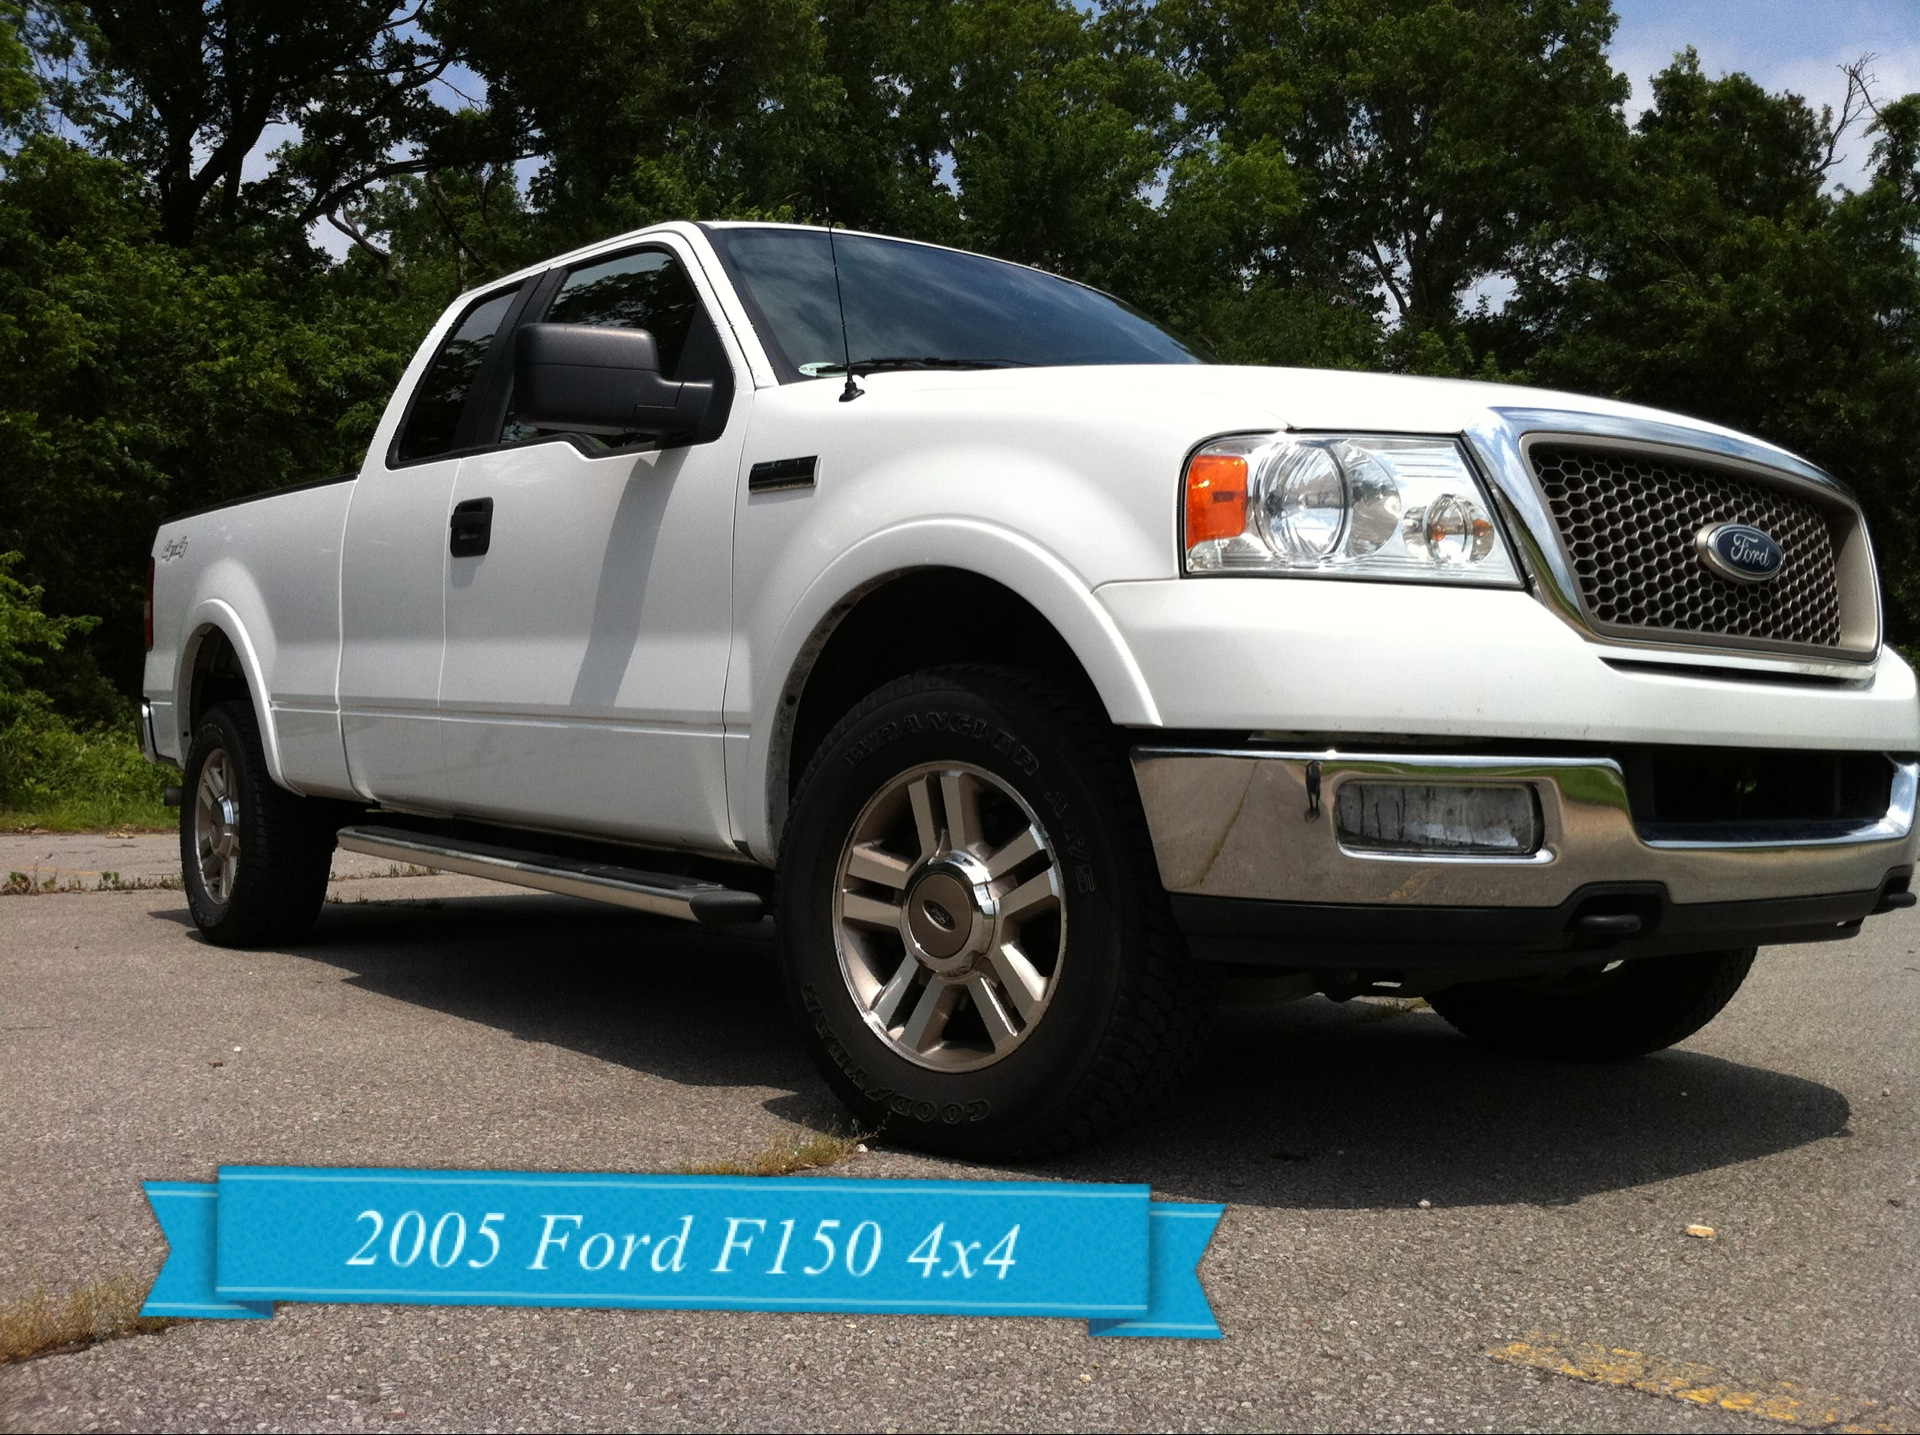 Ford F150 4x4 2005 Ford F150 Truck 4x4 White Lariat With Leather And Heated